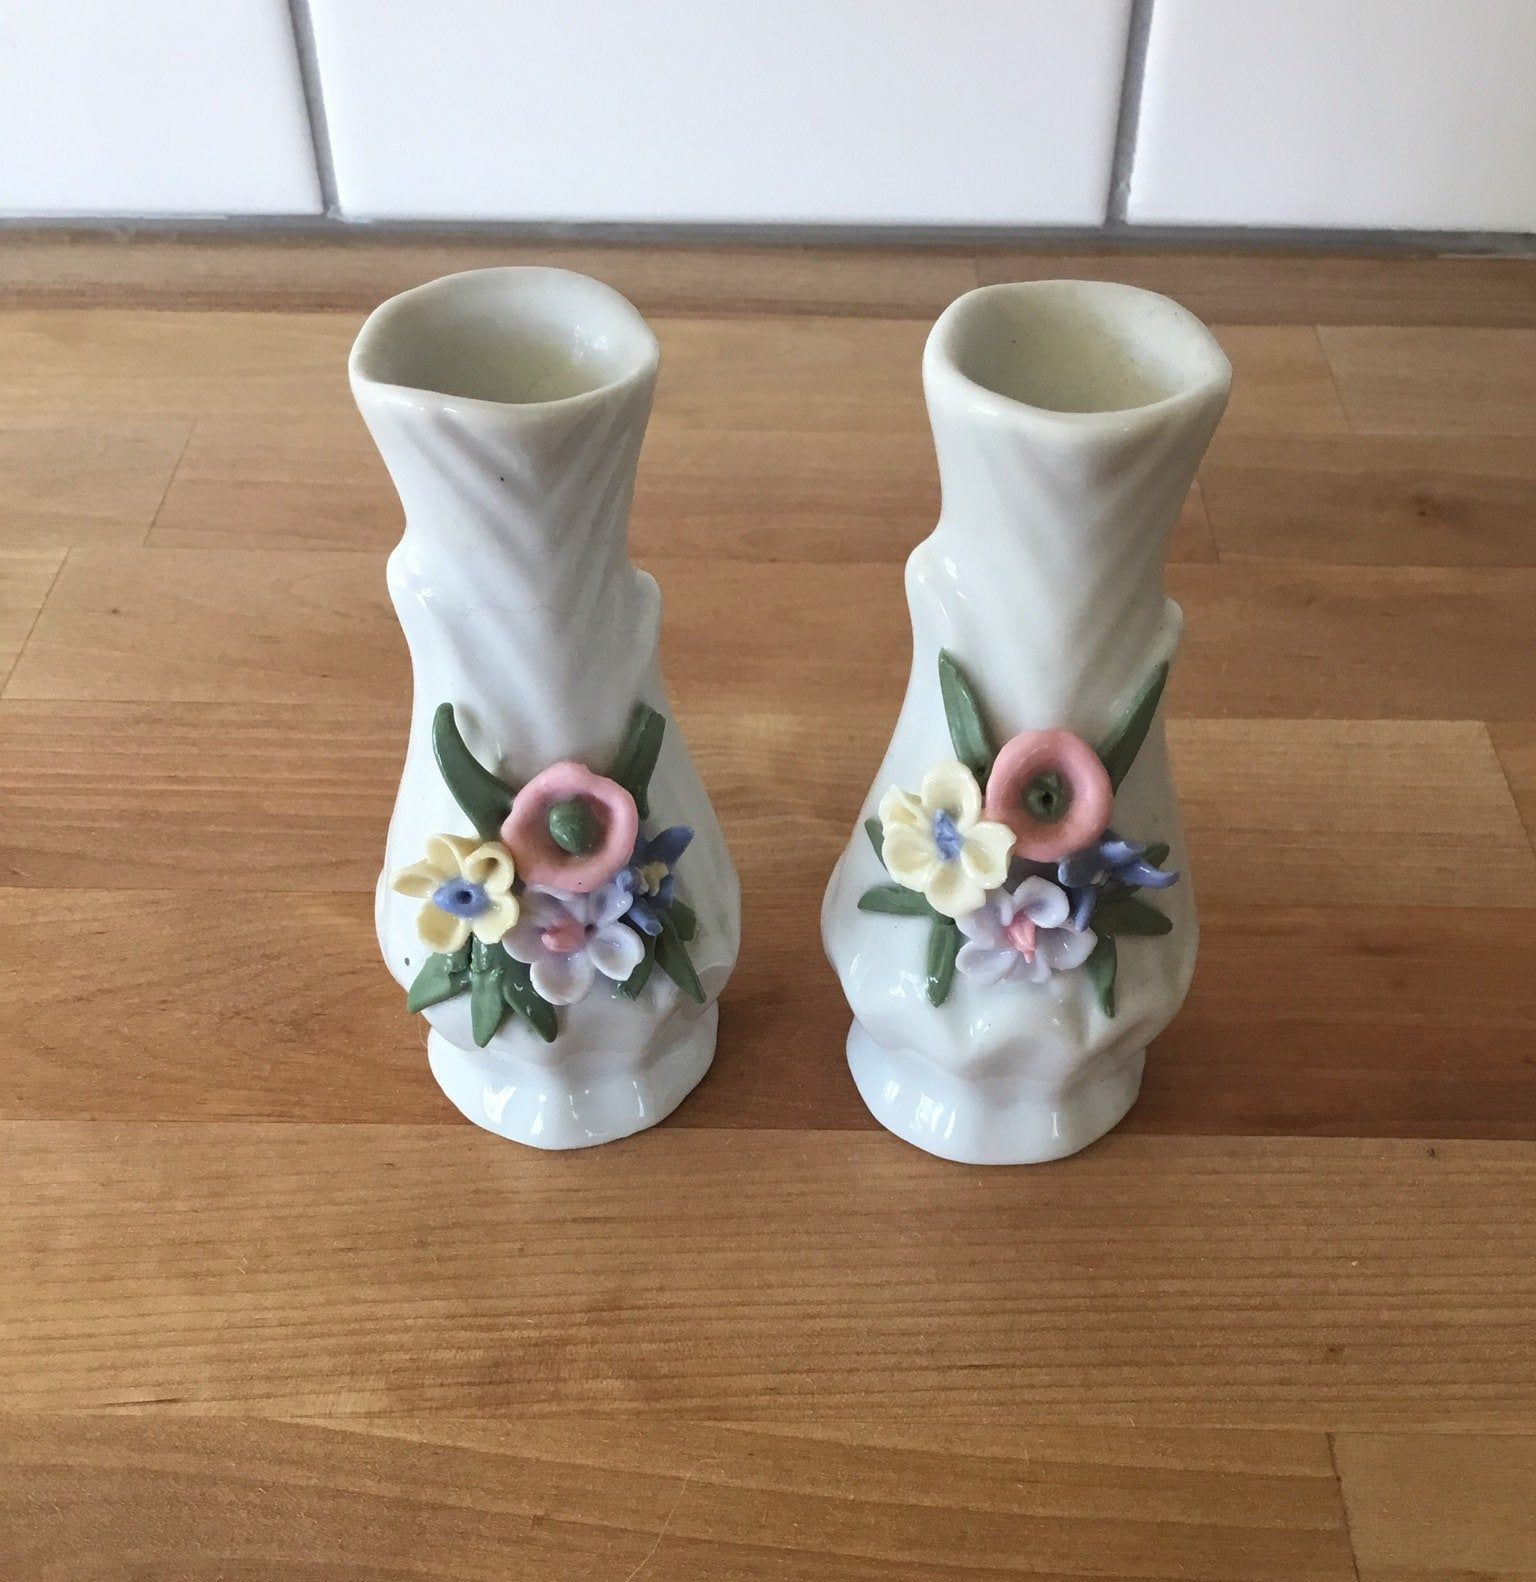 Vintage Shabby Chic Mini Ceramic Vases Made In China Decorated With Lovely 3d Flowers On The Neck By Moniquevernon On Etsy Vase Vintage Vases Ceramic Vases